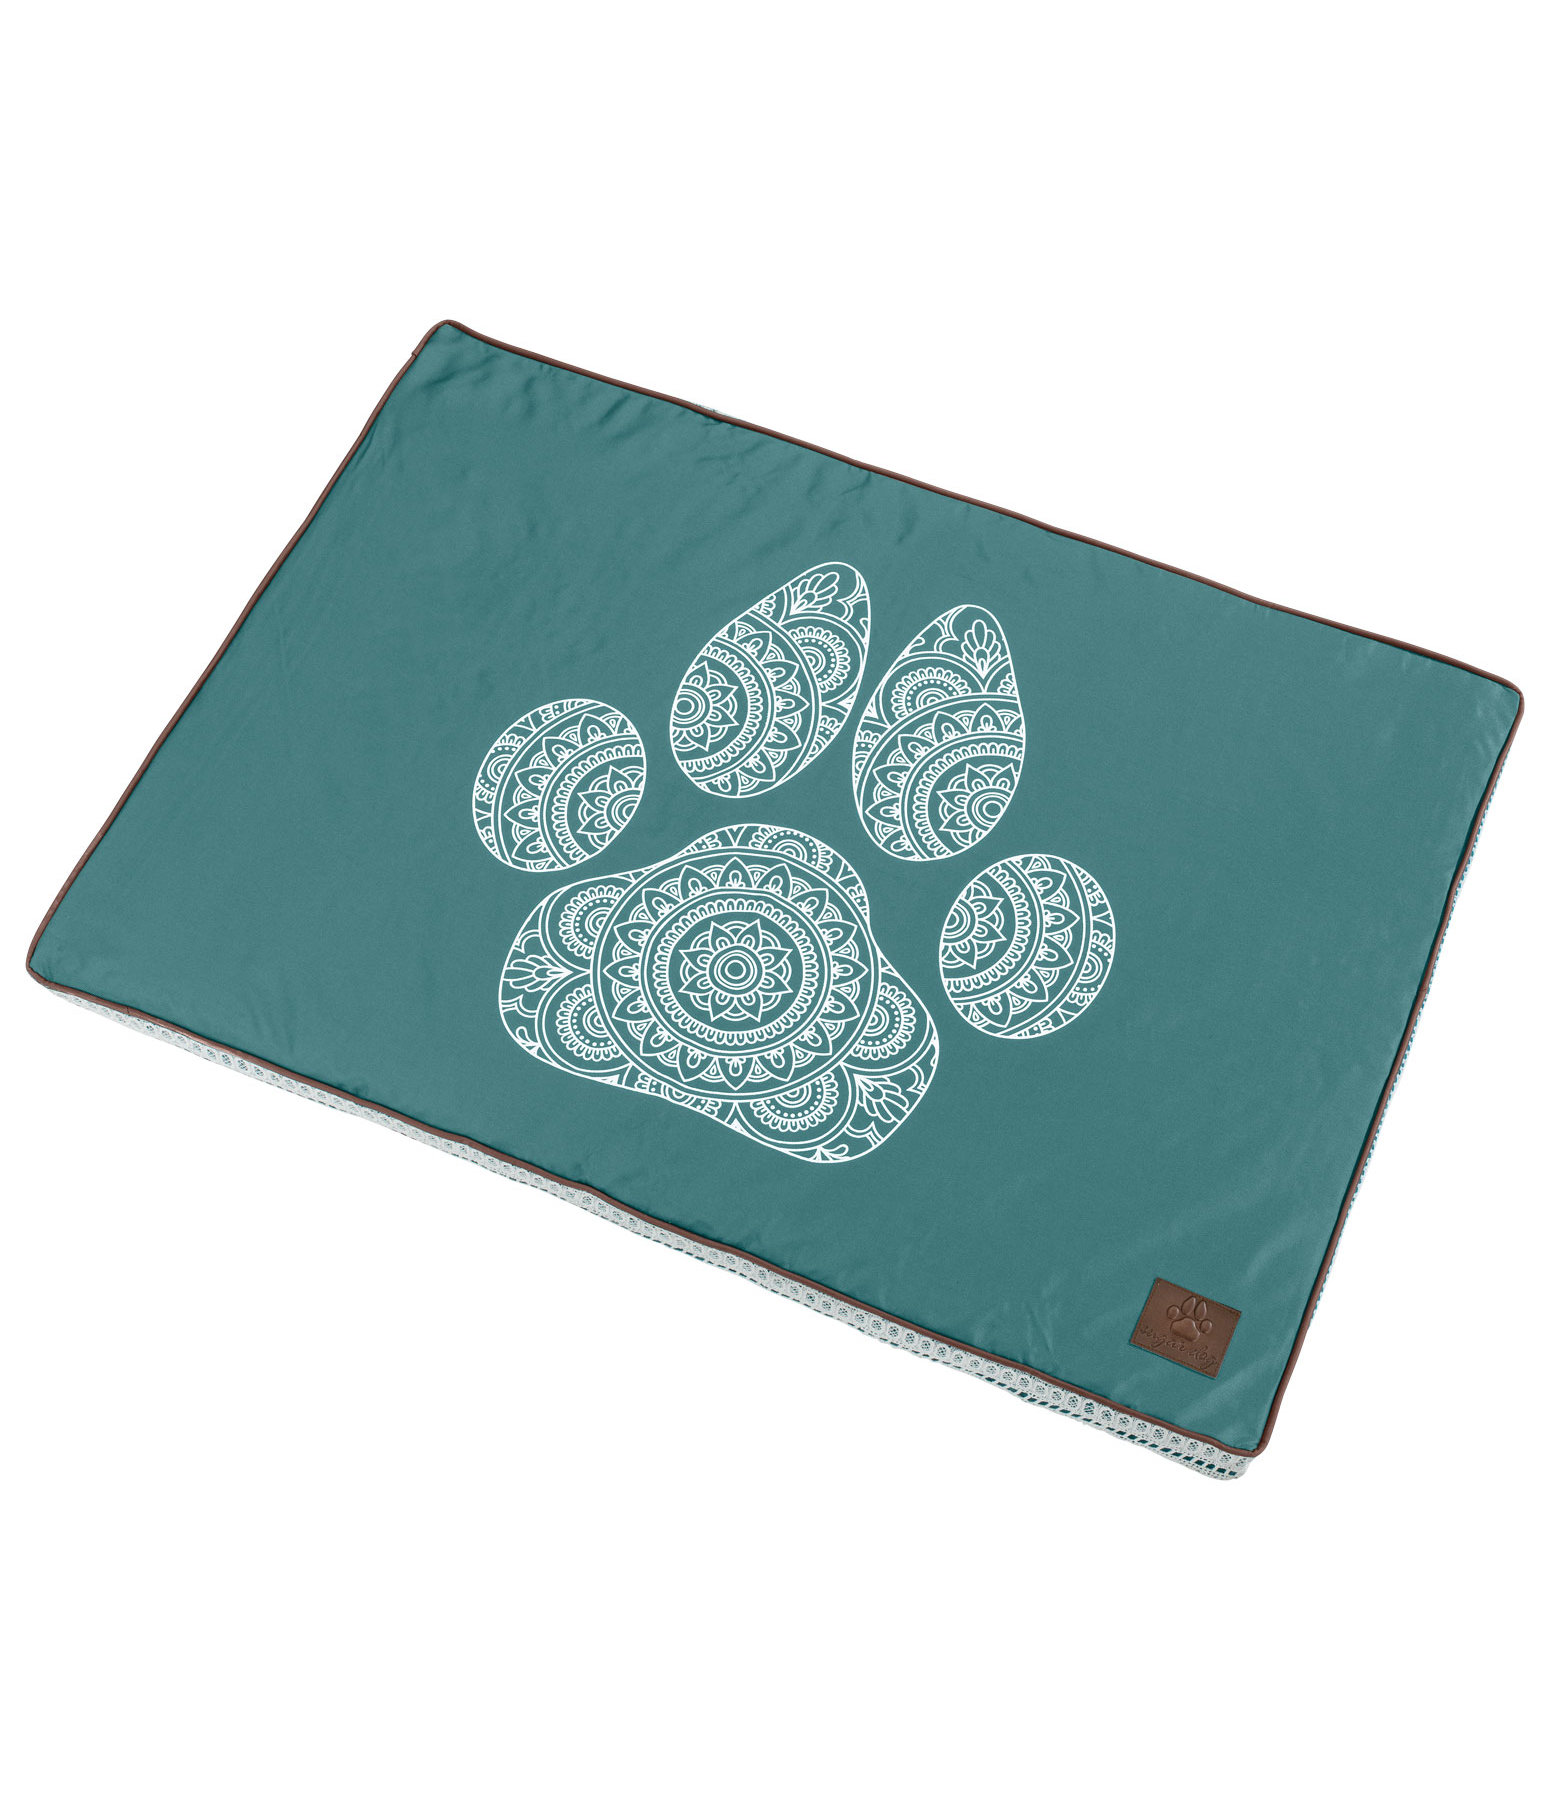 Sleeping Mat Boheme with Cooling Function